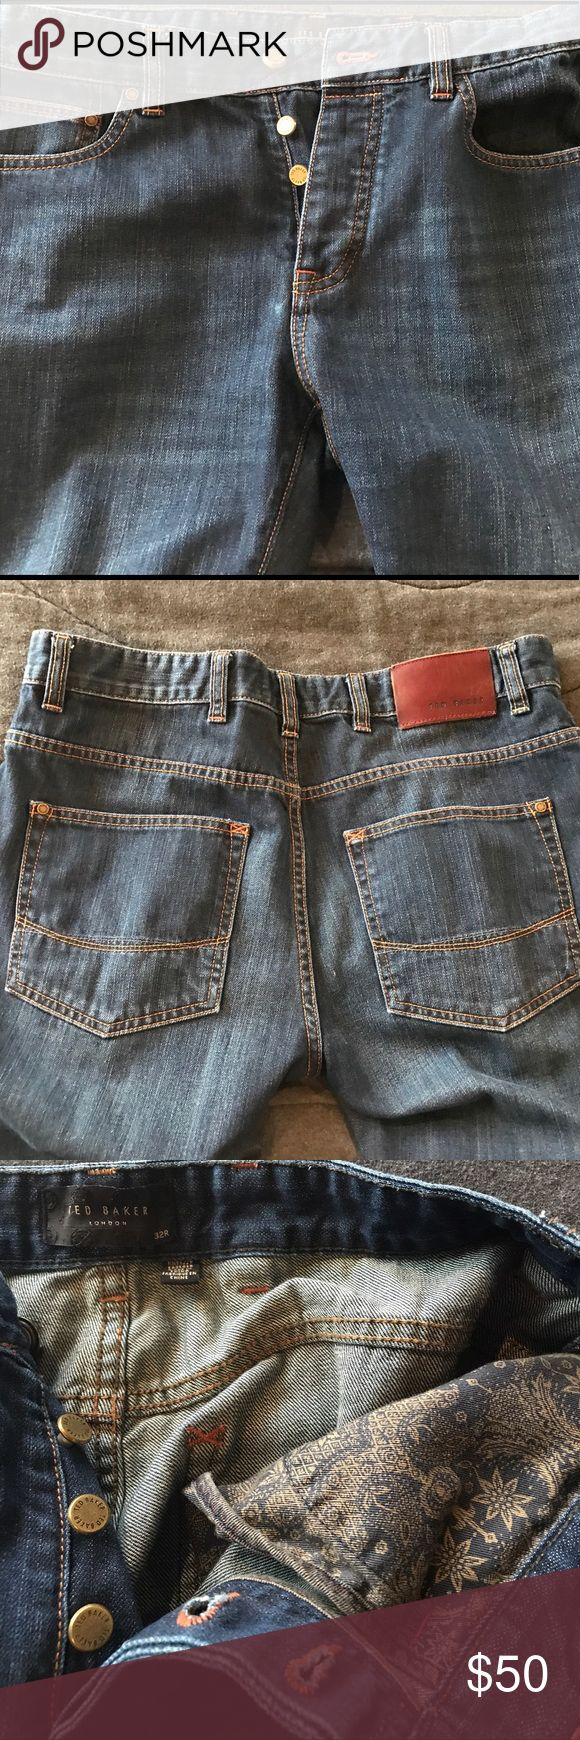 Ted Baker Jeans CLose to mint TED BAKER Jeans Ted Baker Jeans Straight